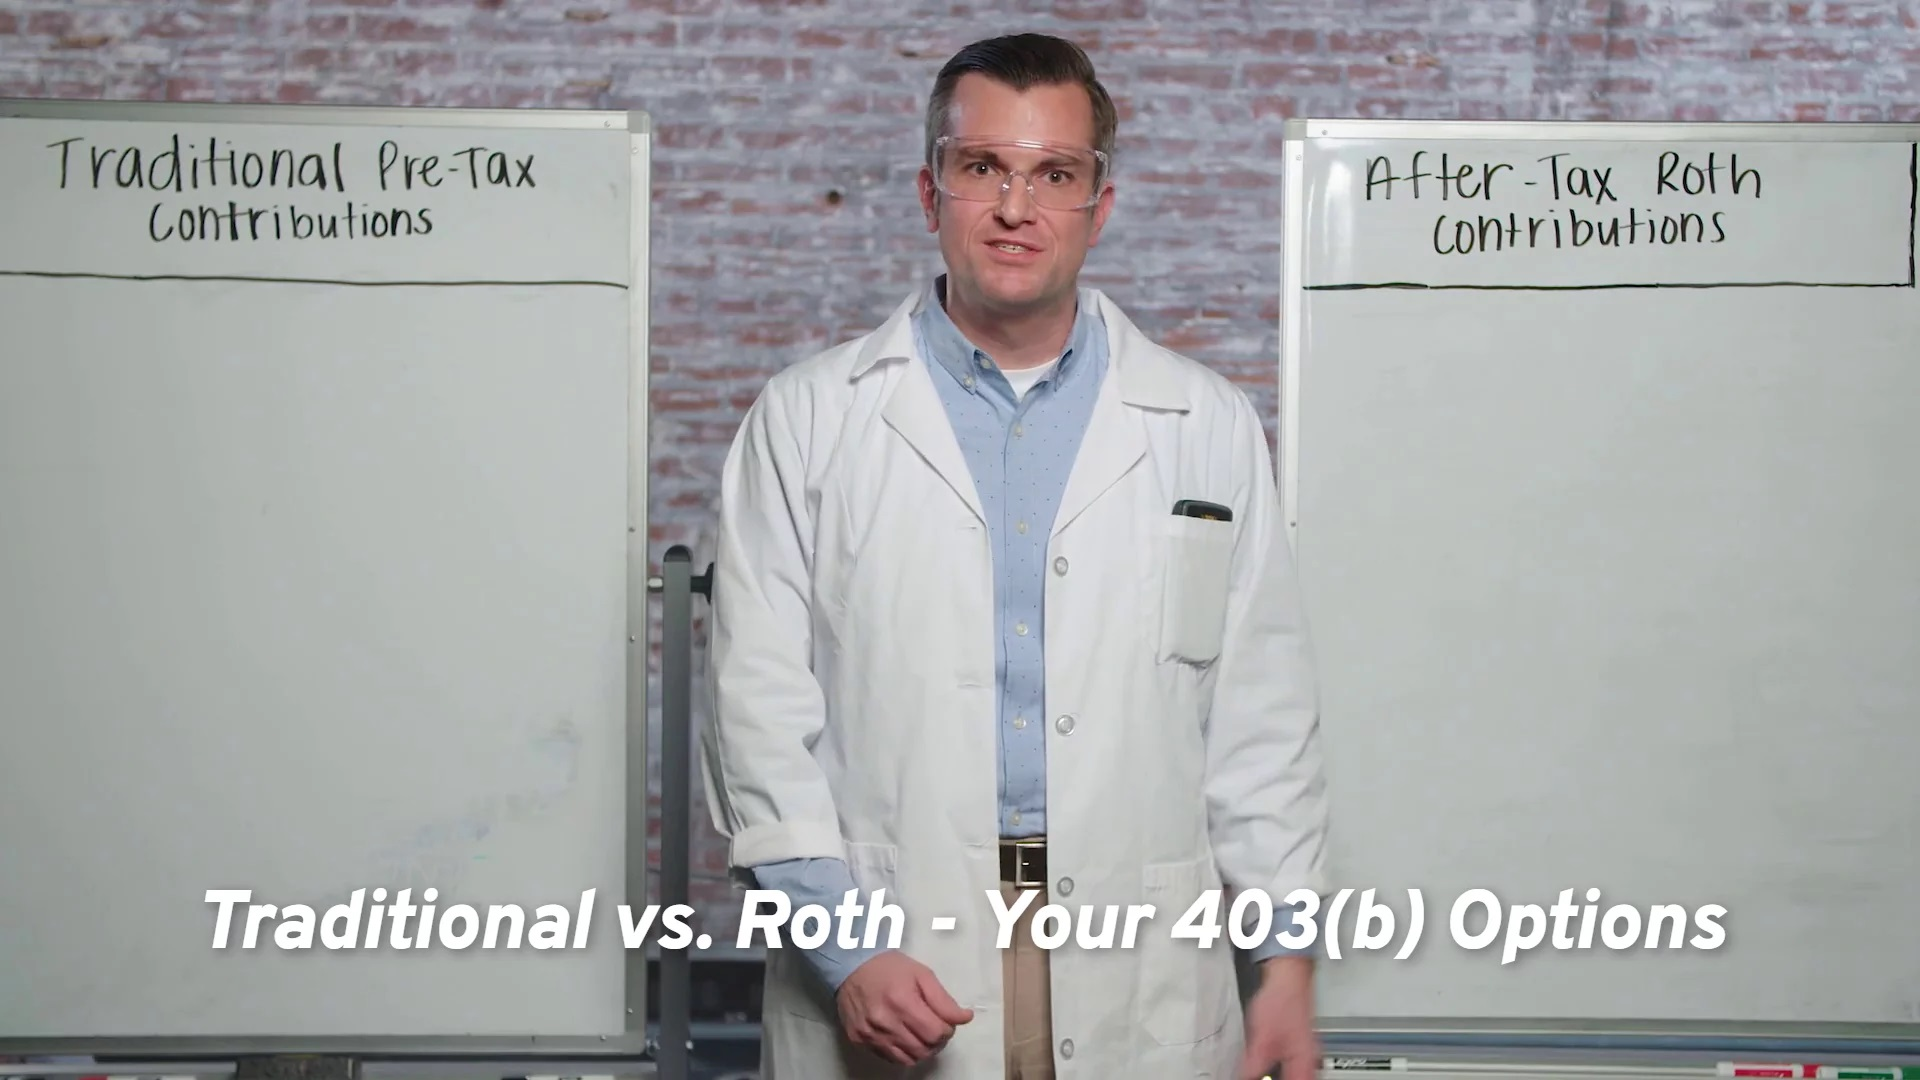 Traditional vs. Roth - Your 403(b) Options